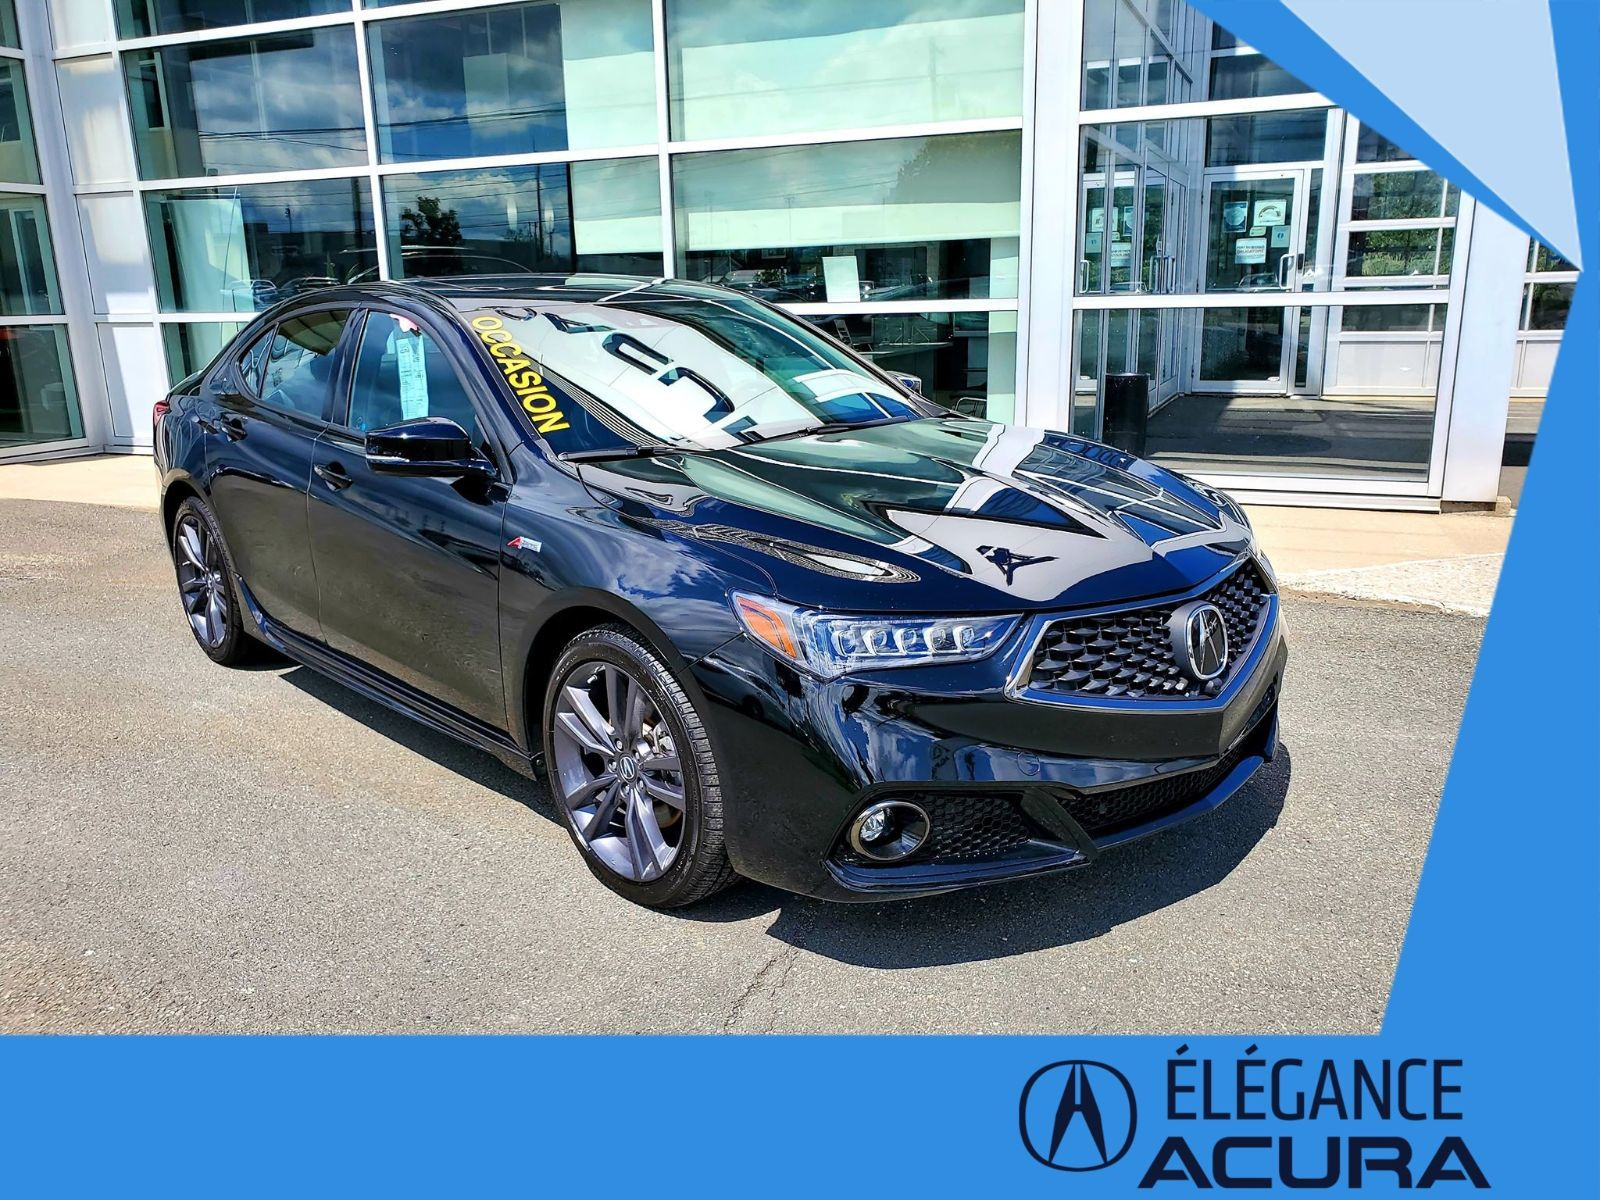 Elegance Acura Pre Owned 2020 Acura Tlx A Spec Elite For Sale In Granby